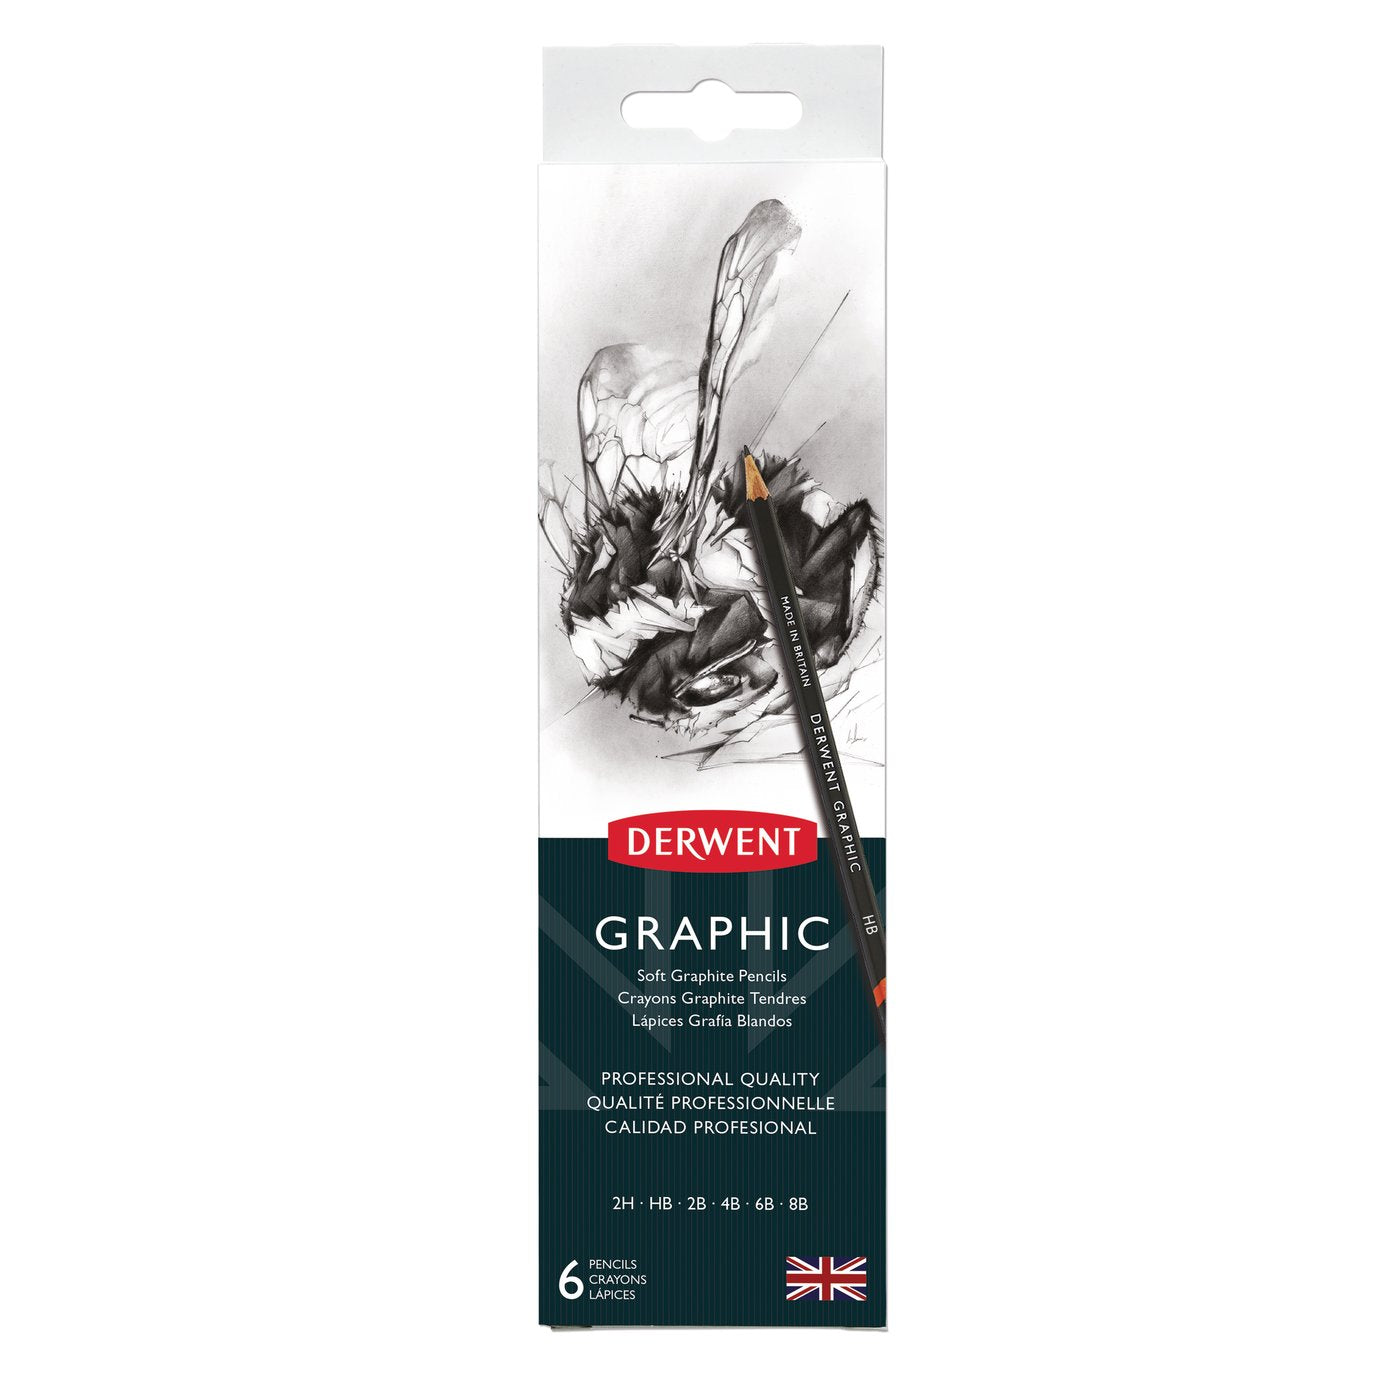 Derwent Graphic 6 Pencil Set